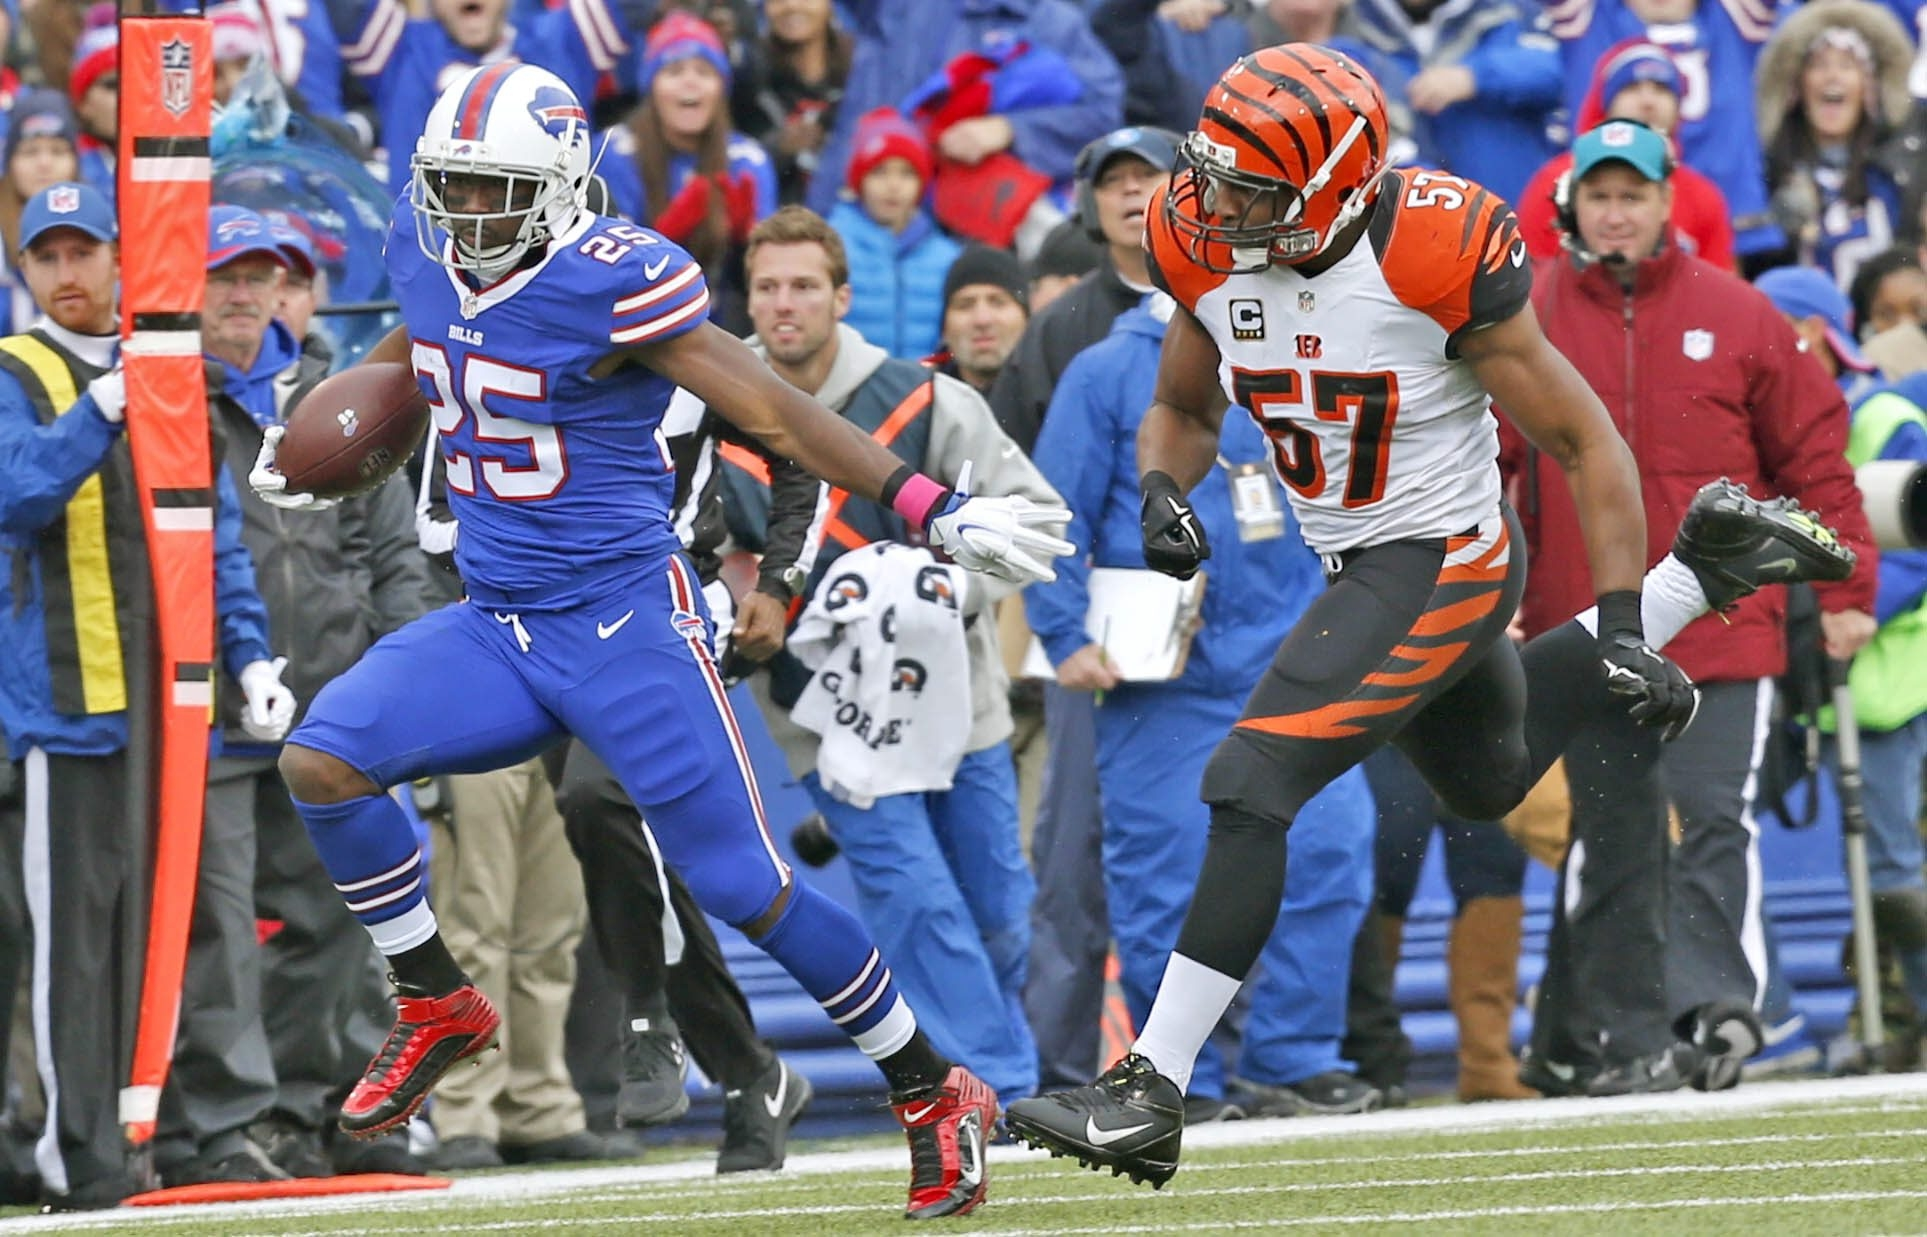 LeSean McCoy has occasionally shown he's the player the Bills made the blockbuster offseason trade for, but injuries have slowed him down.